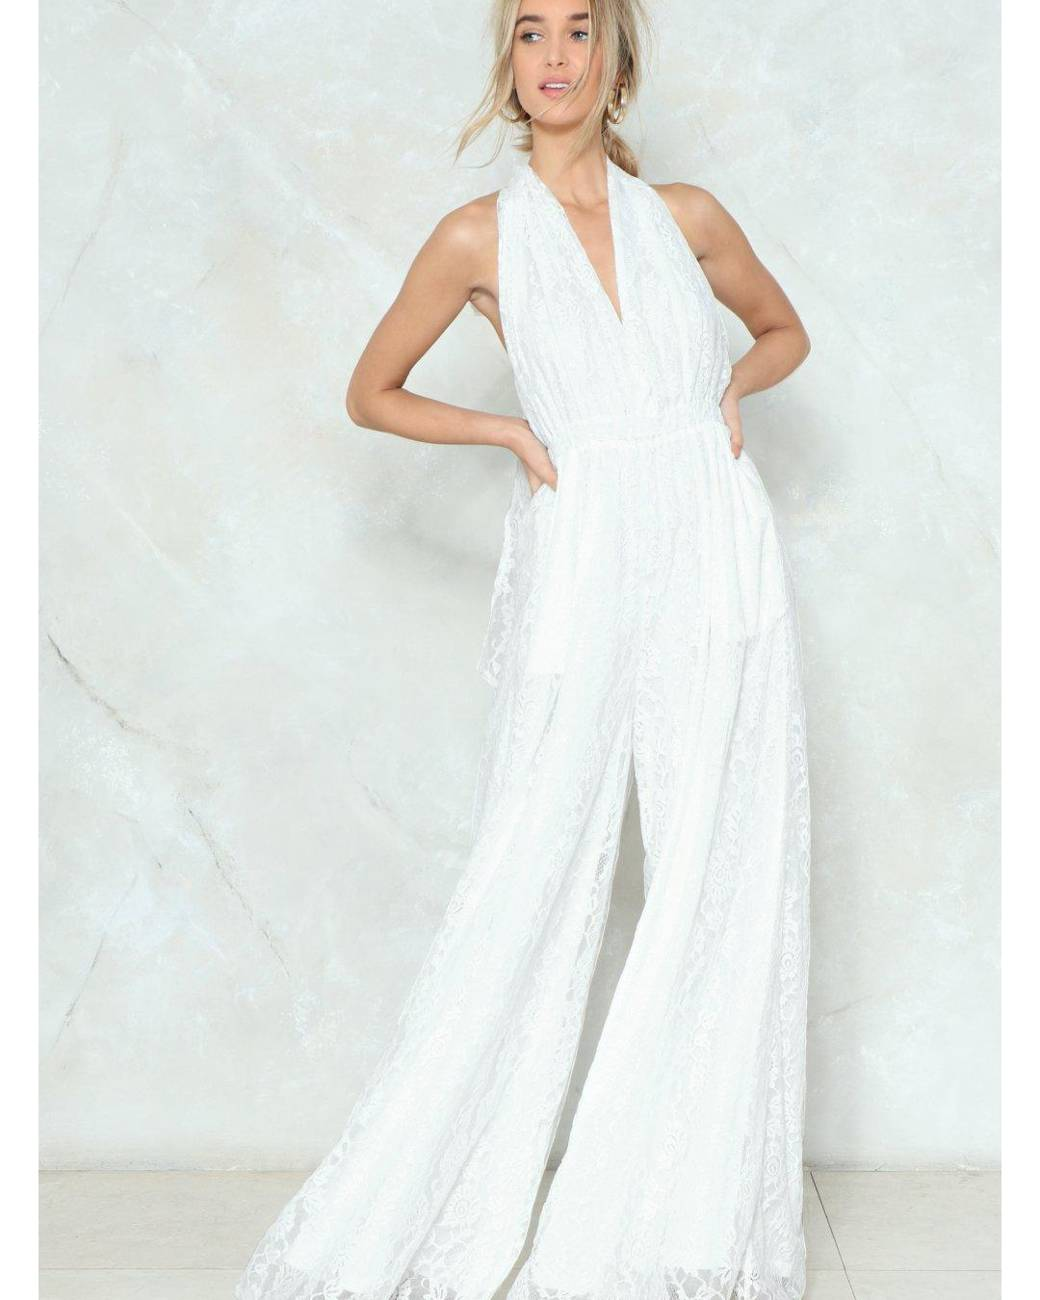 Throw Out Wedding Dresses Become A Coolest Bride By These White